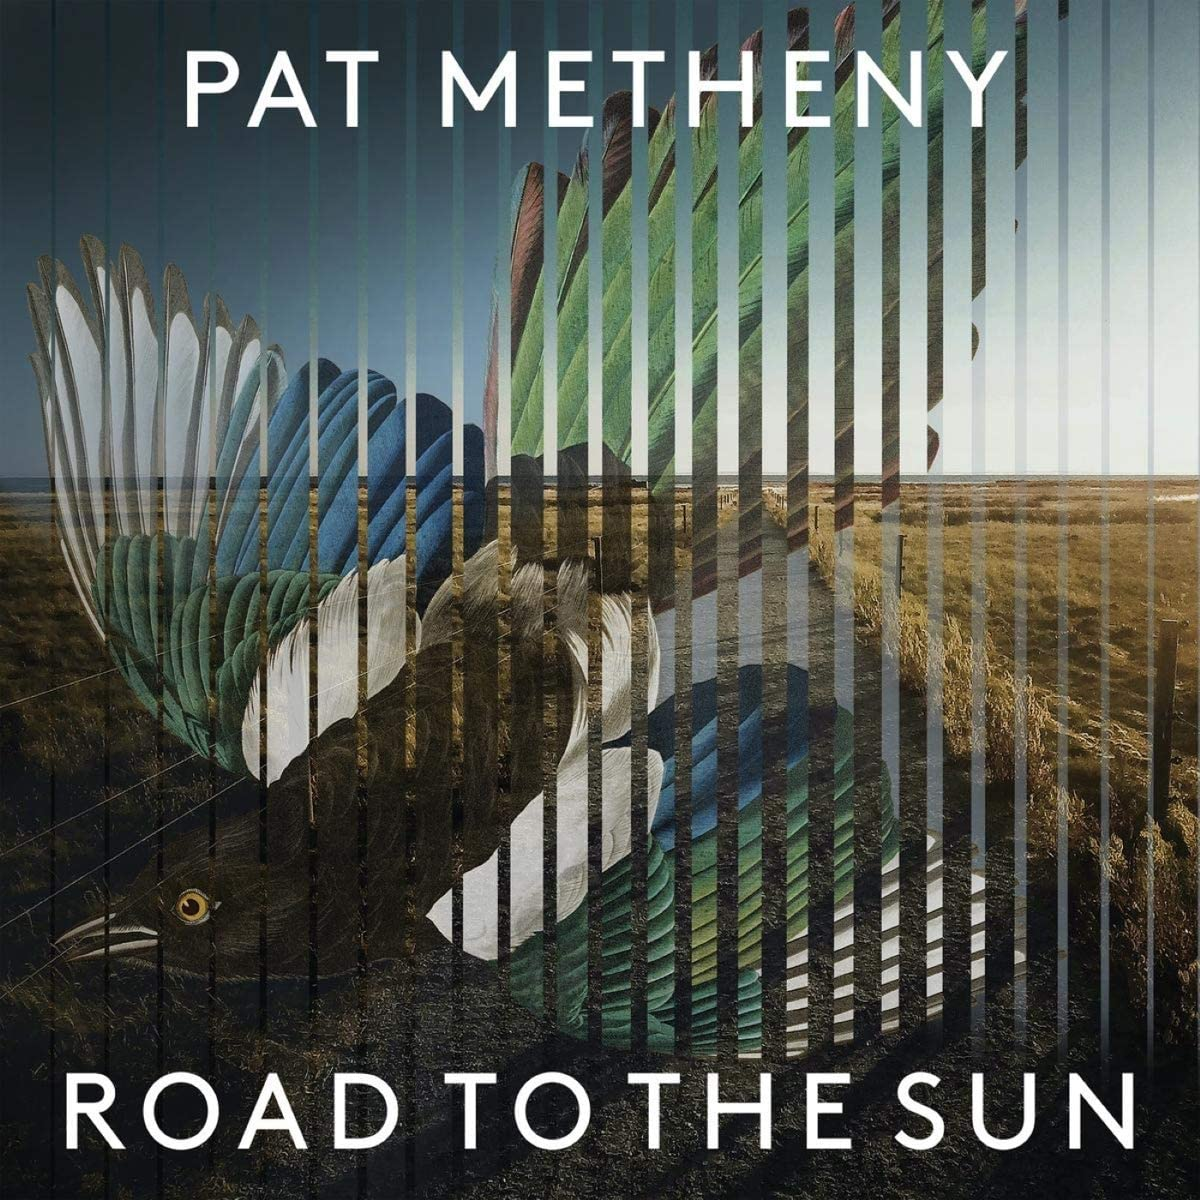 pat metheny_road to the sun